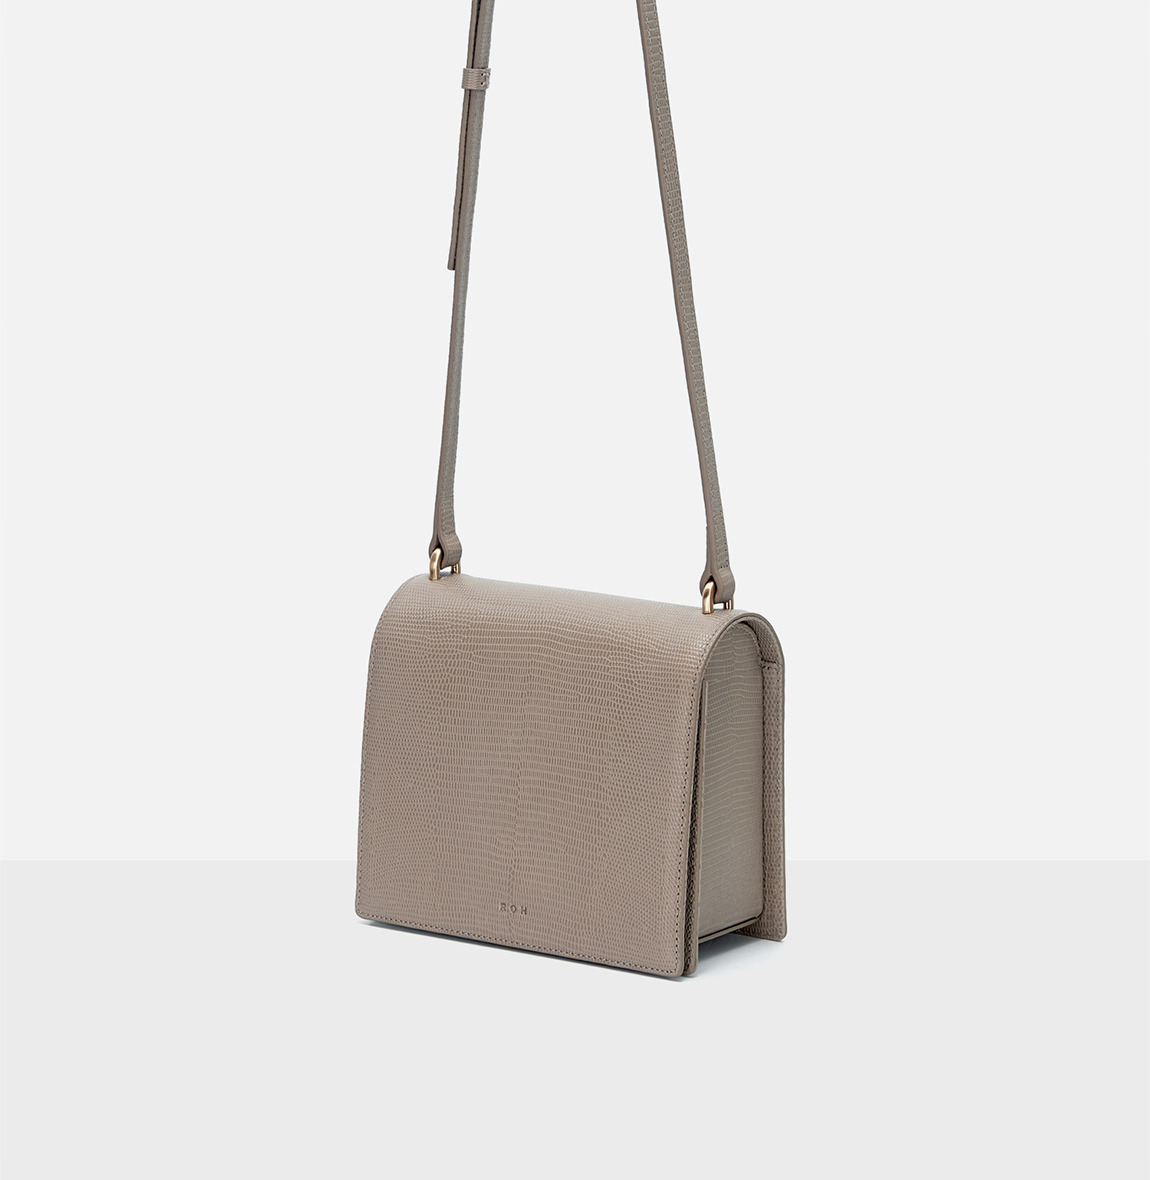 [19FW NEW]Caddy small shoulder bag Beige Lizard pattern